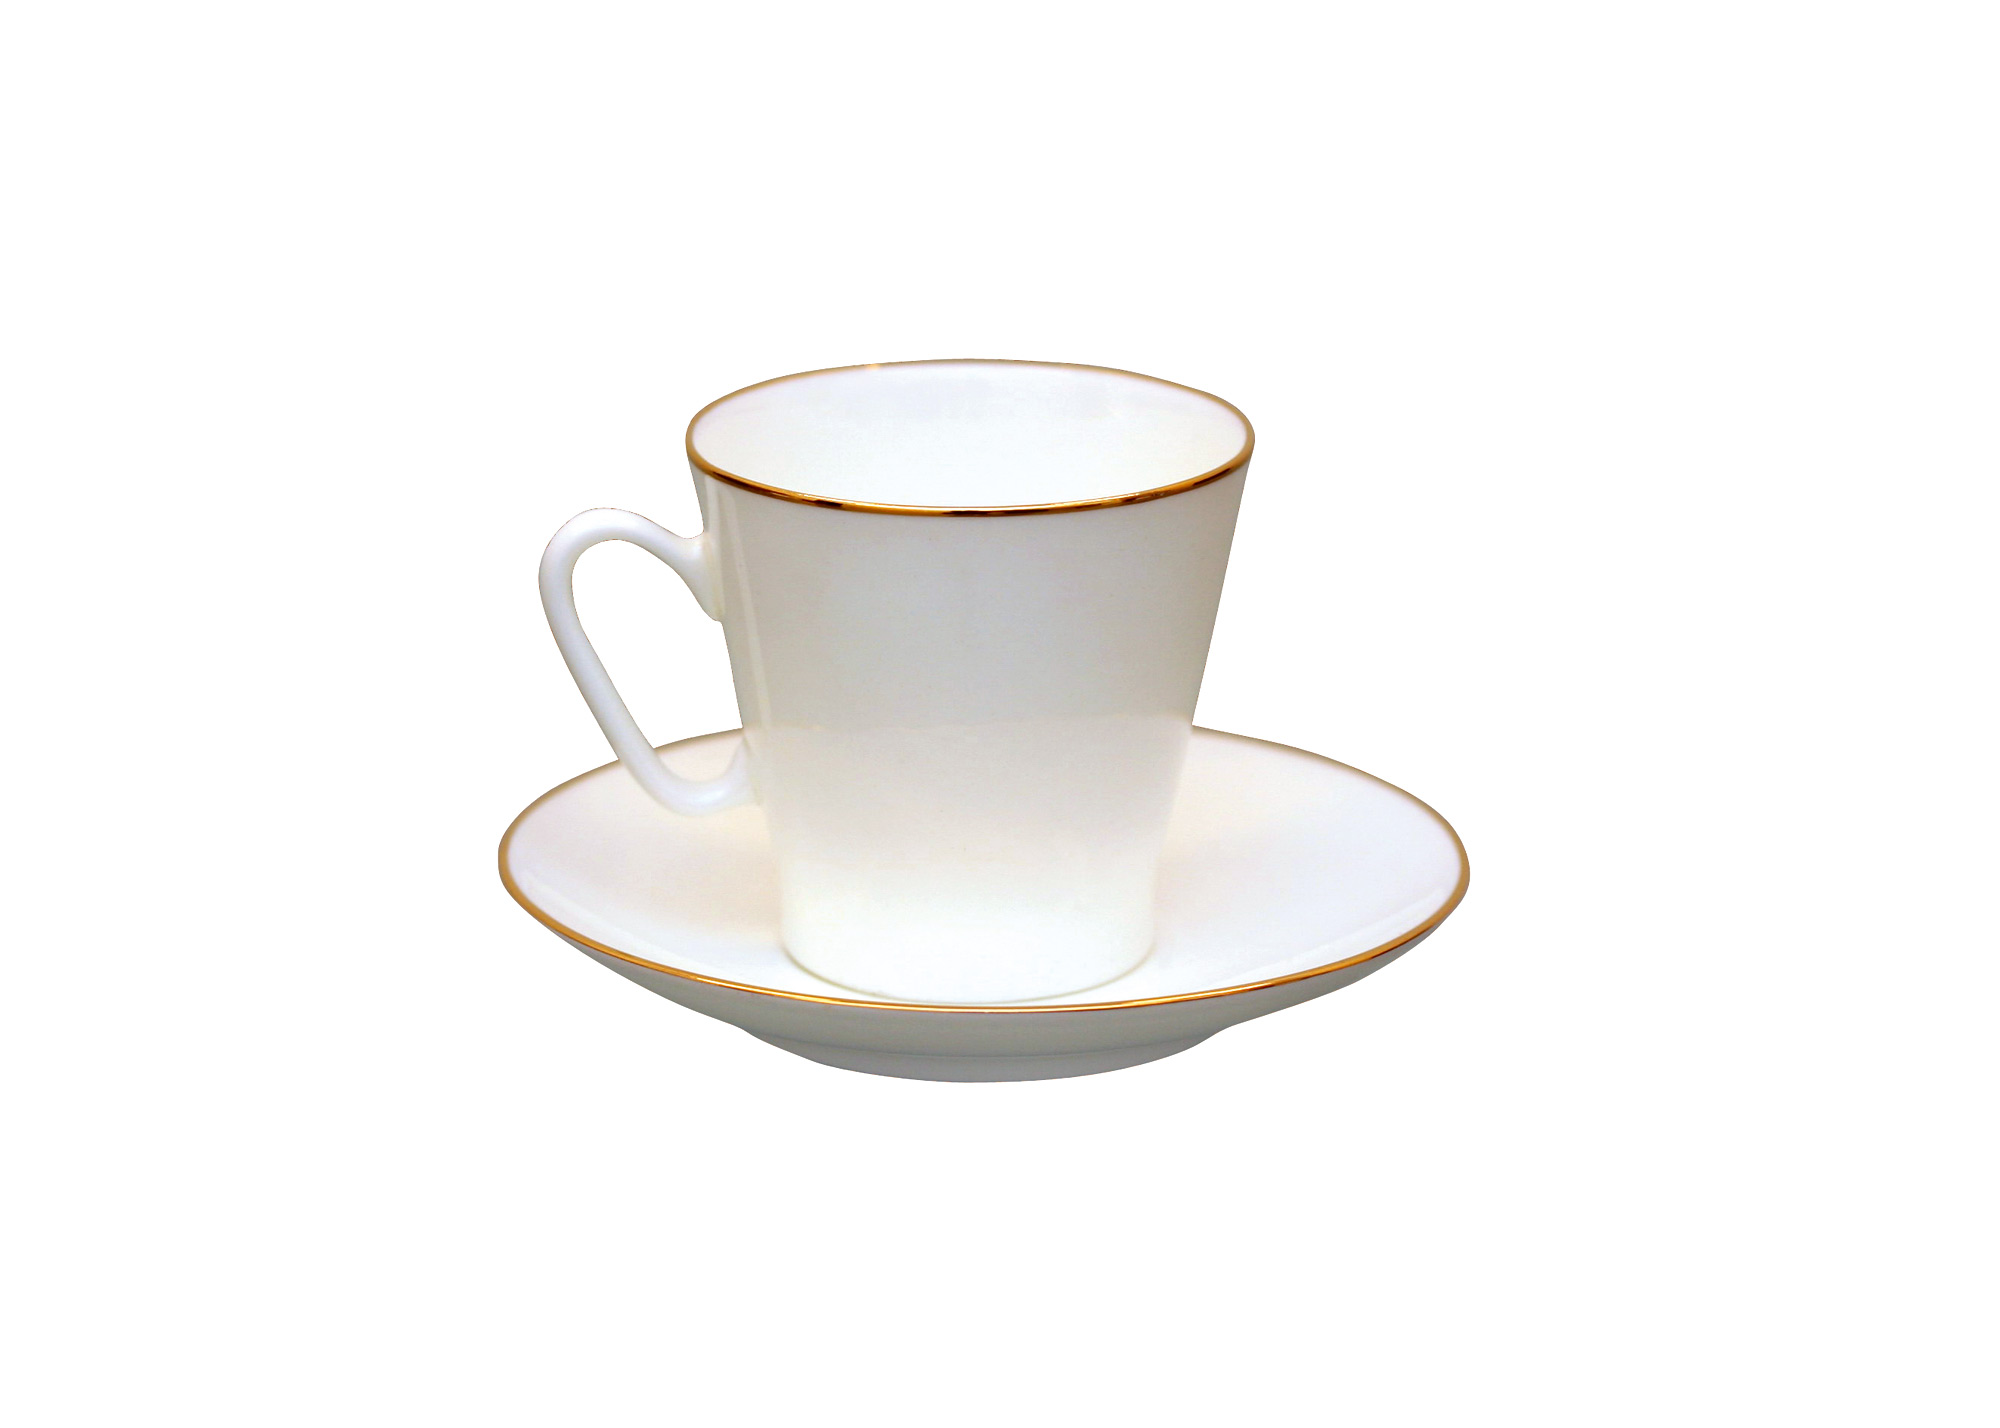 Buy Golden Edge C/S Bone China, BLACK COFFEE at GoldenCockerel.com